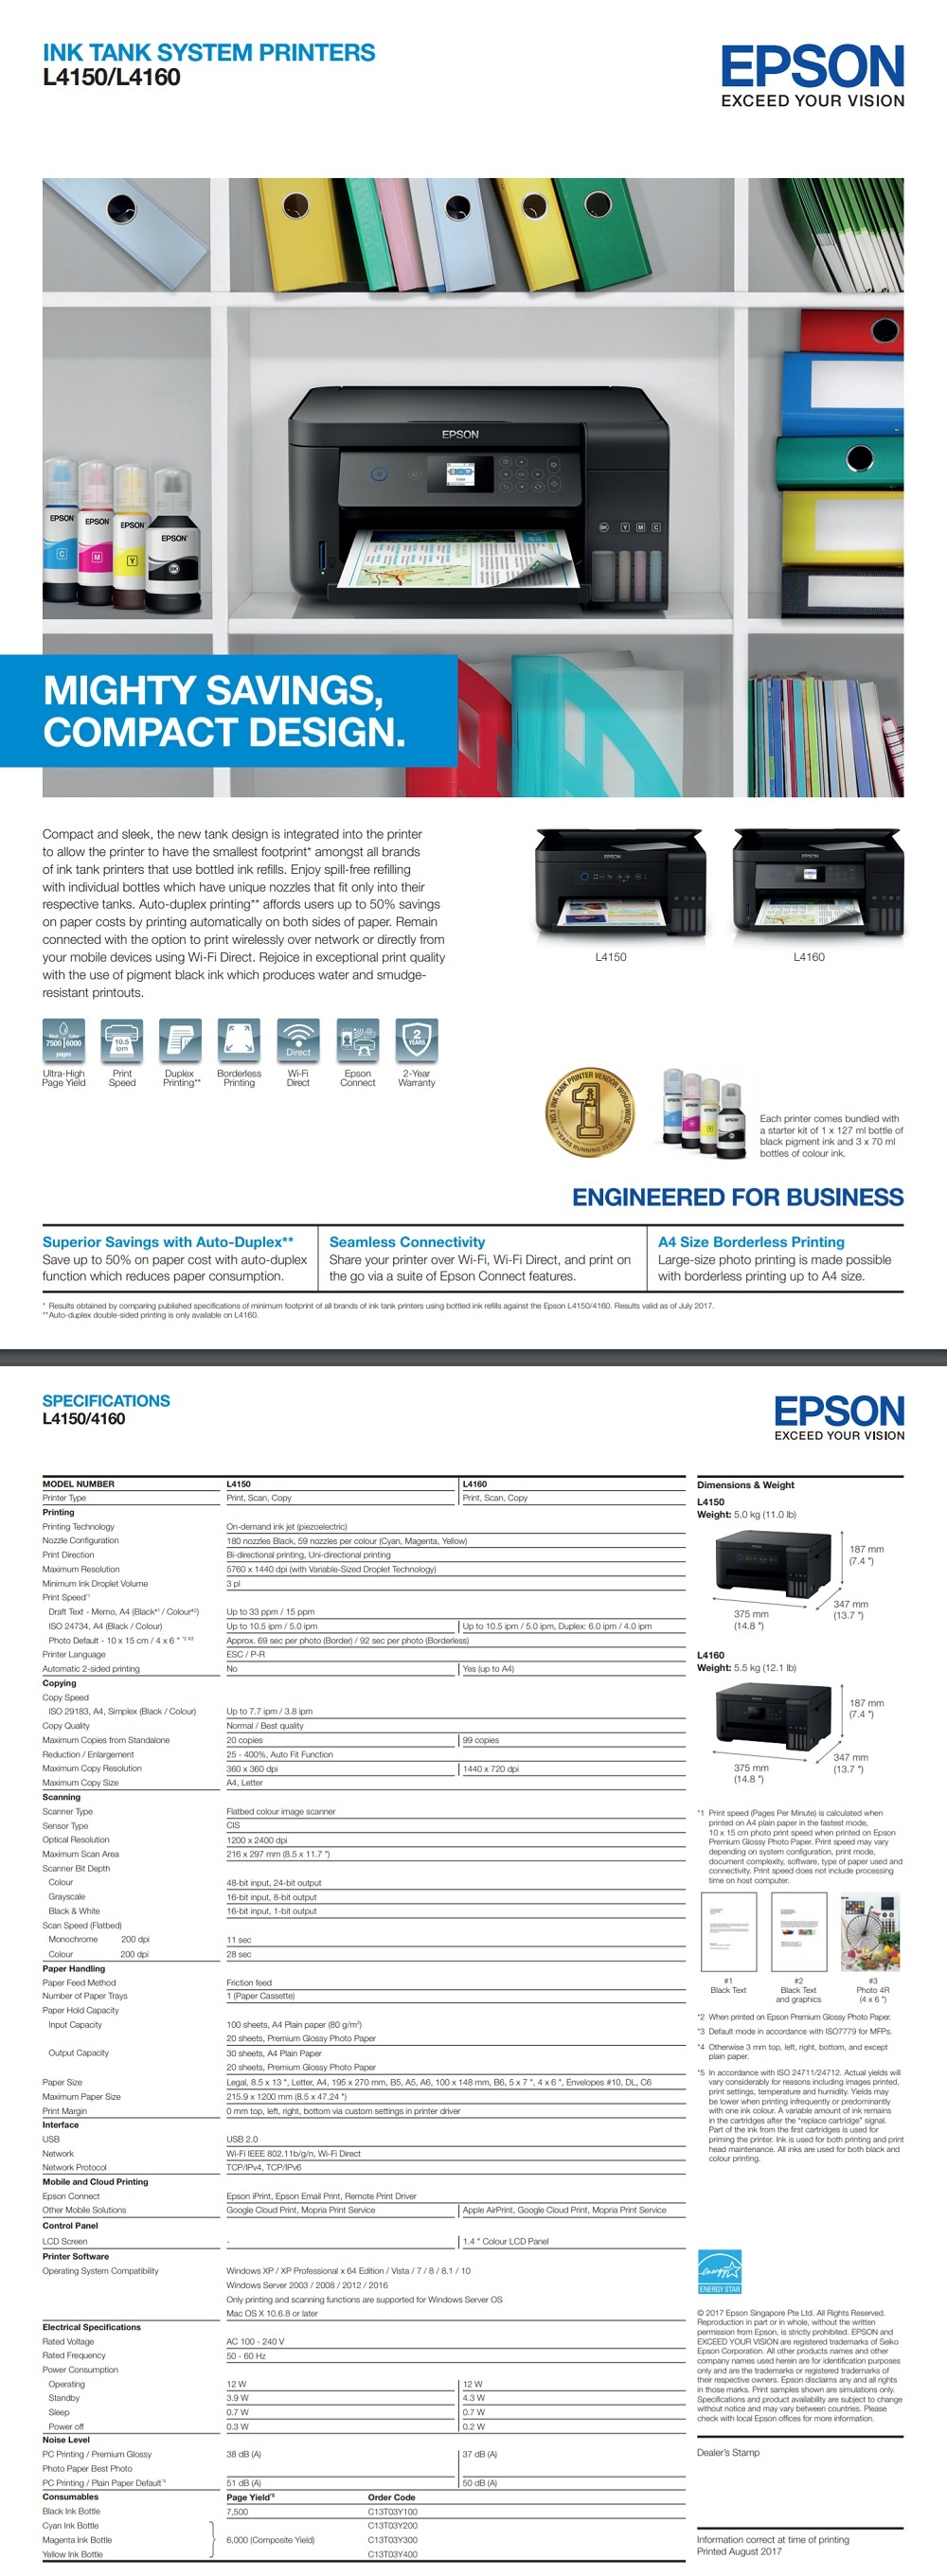 Epson L4150 Wi-Fi All-in-One Ink Tank Printer Singapore